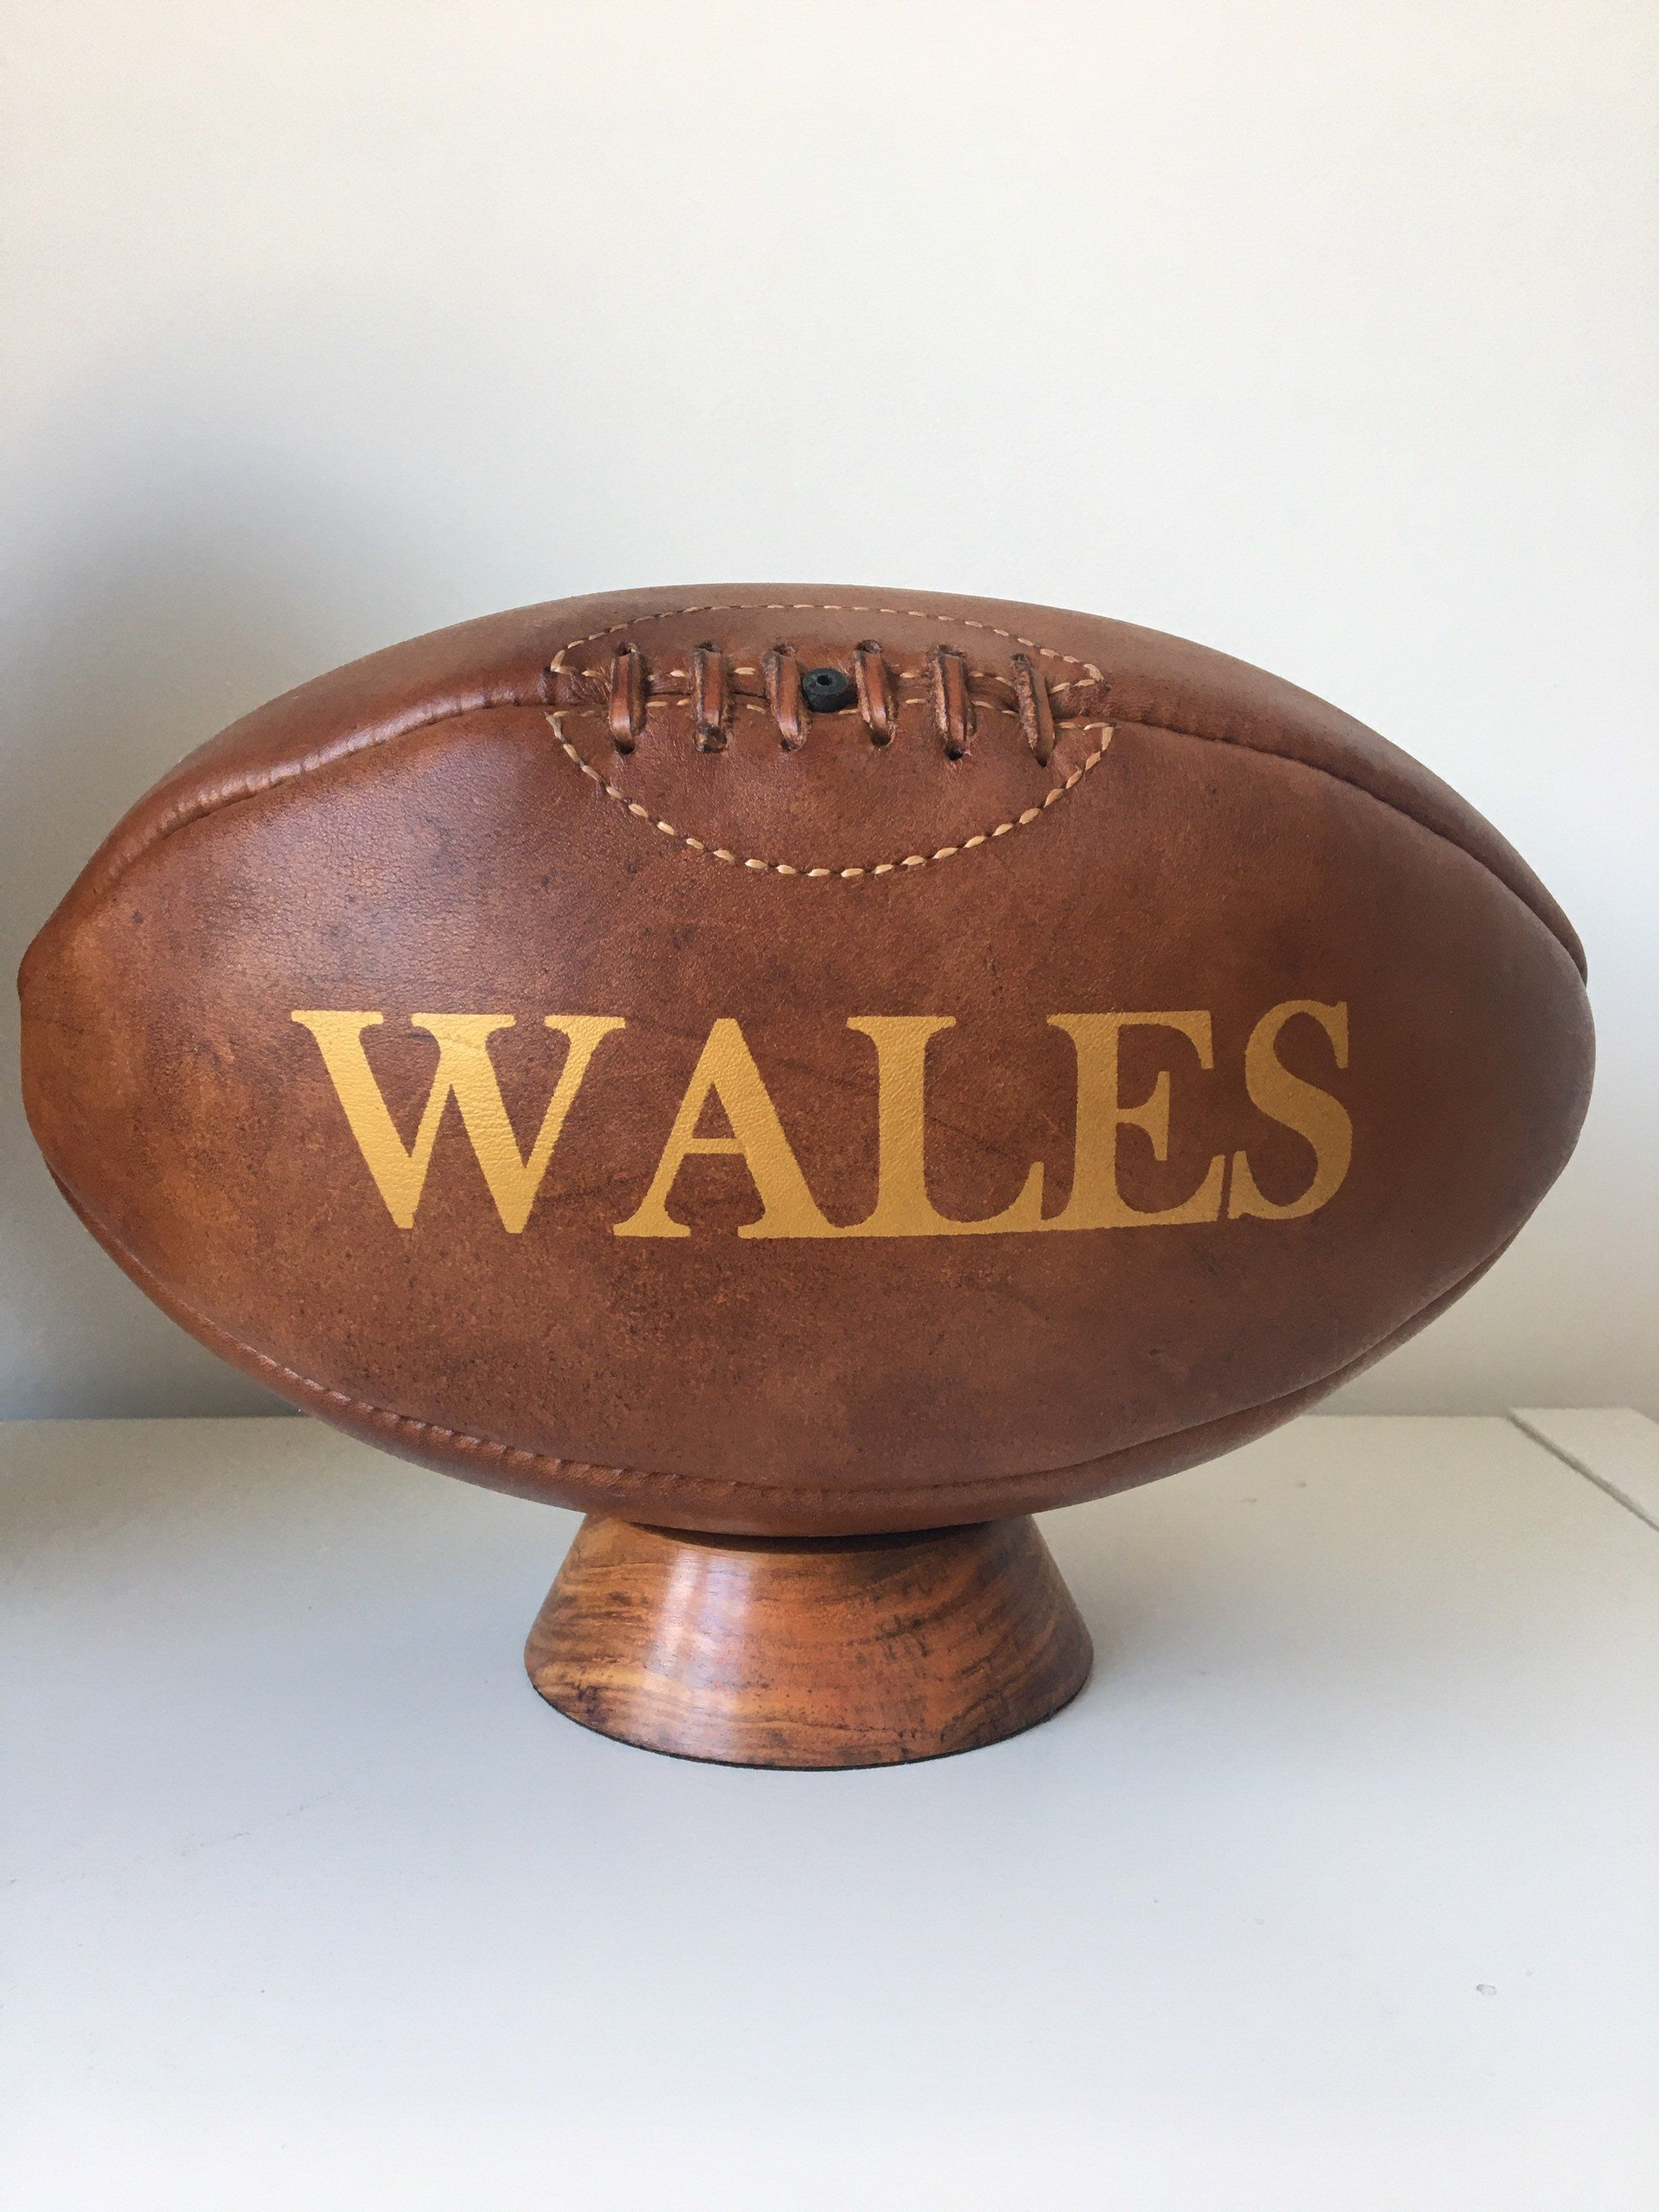 Rugby Vintage Wales Rugby Ball Leather Rugby Ball Vintage Sports Gift For Men Teenager Gift Corporate Gift Man Cave In 2020 Rugby Ball Rugby Vintage Teenager Gifts